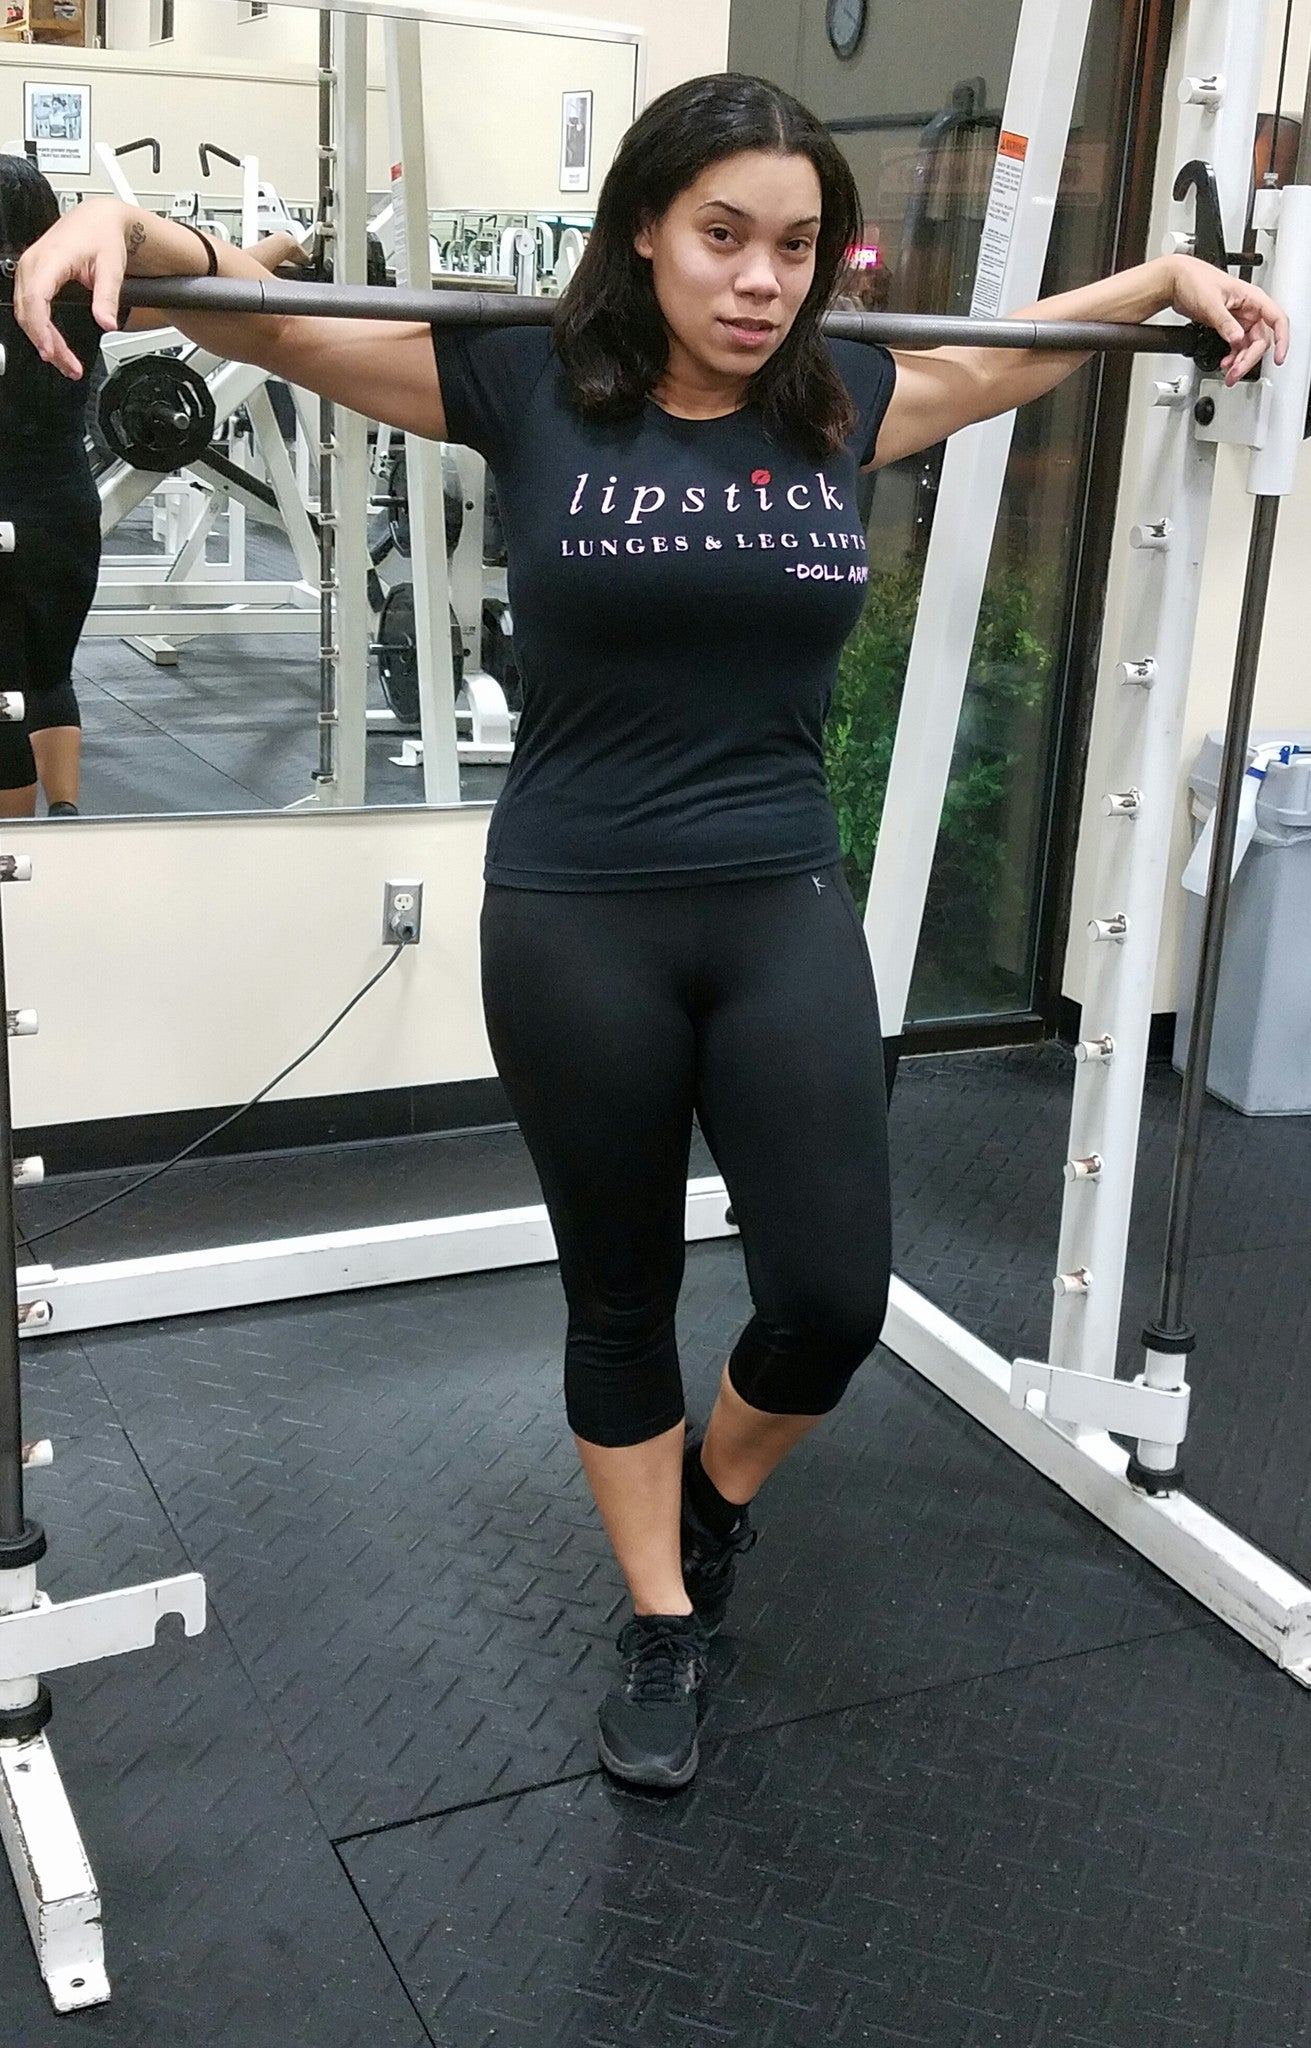 Lipstick, Lunges & Leglifts Tee